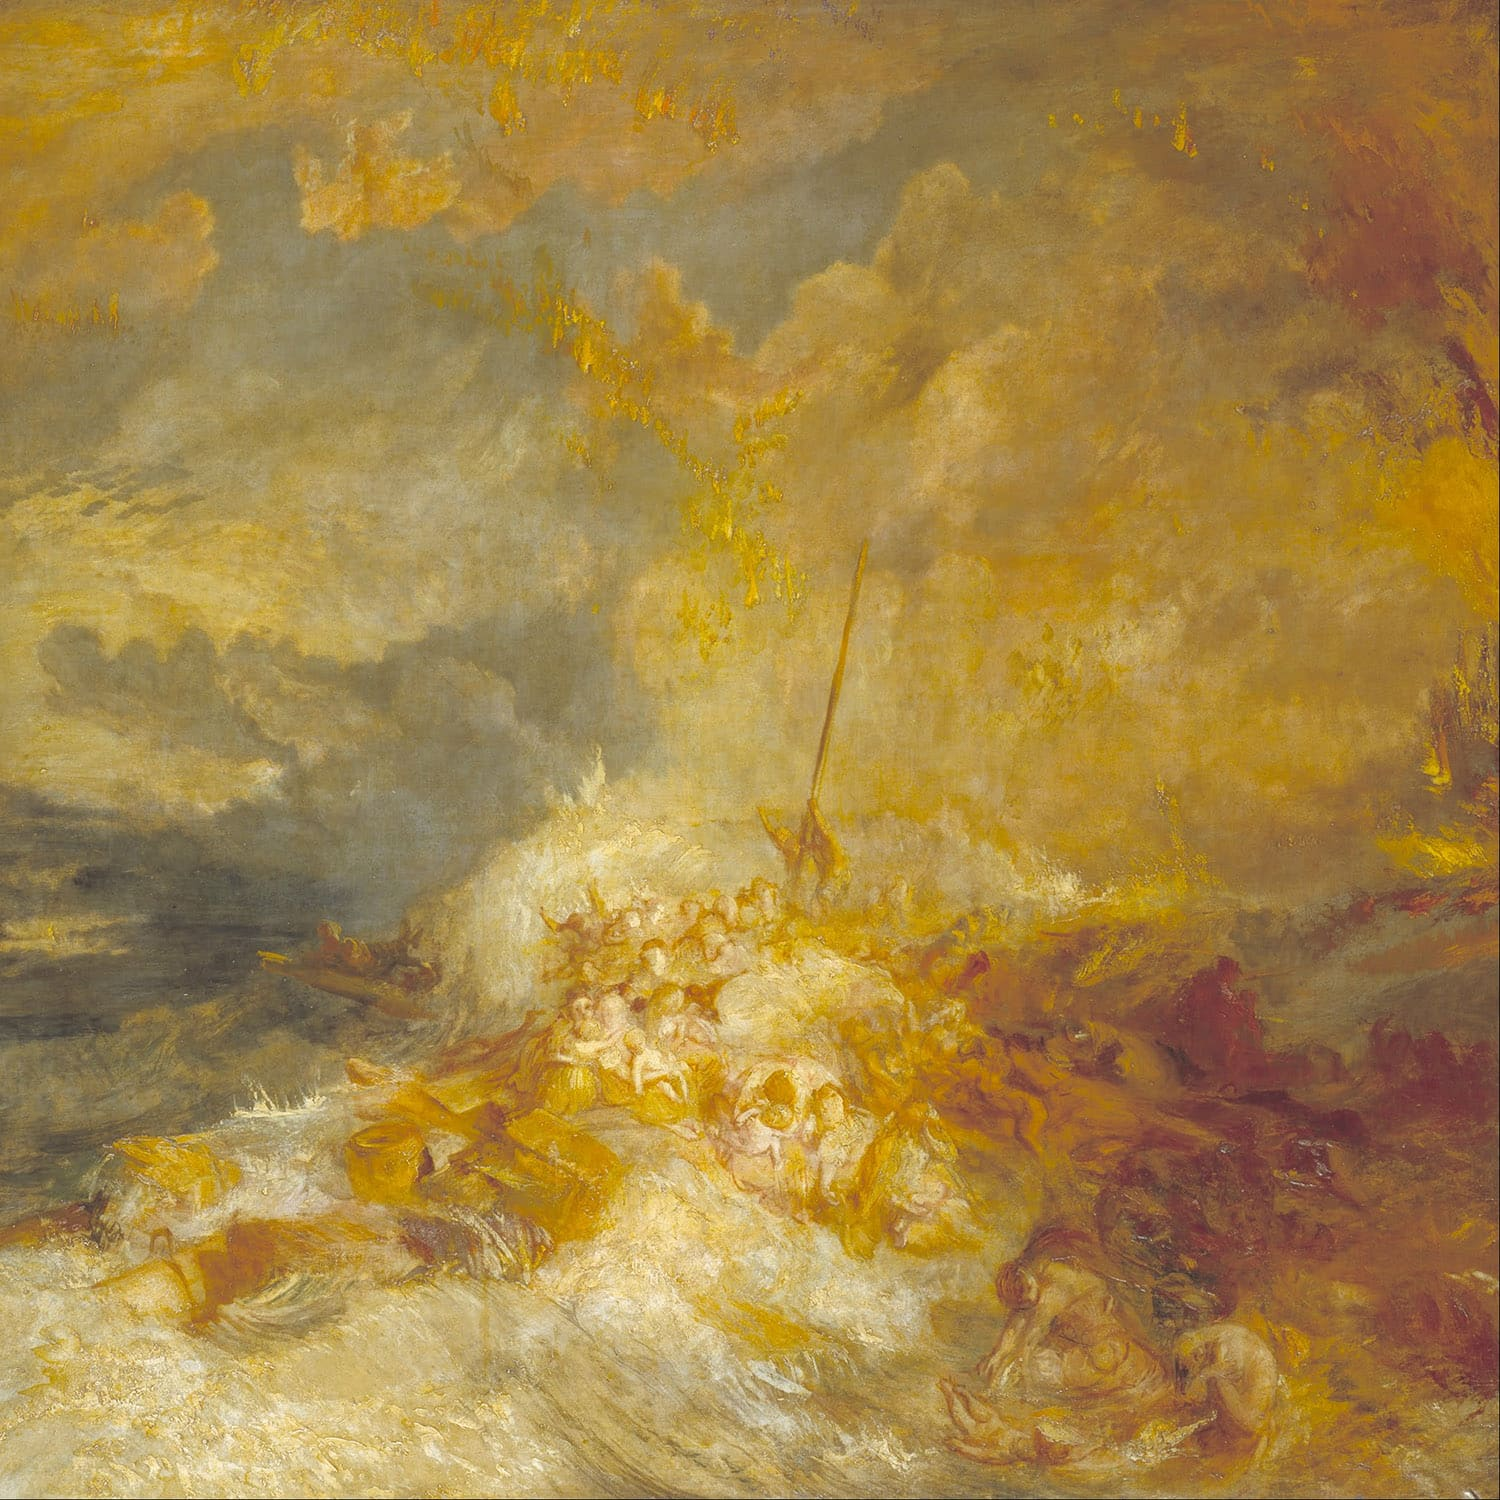 A disaster of sea - JMW Turner